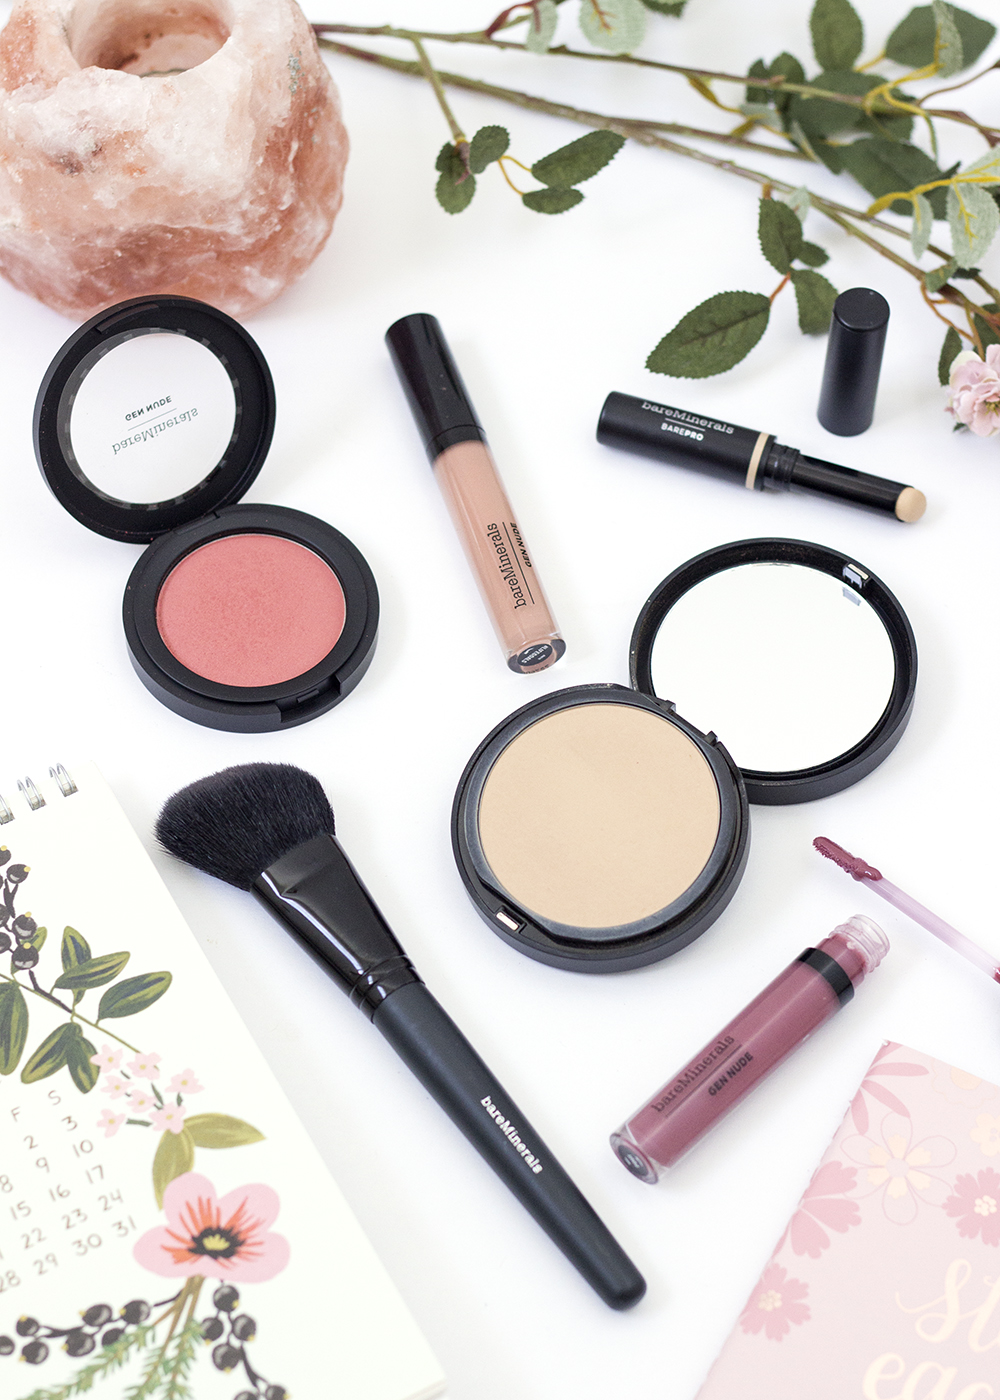 BareMinerals BarePro Powder Foundation, Gen Nude Blush, Patent Lip Lacquers & BarePro Concealer